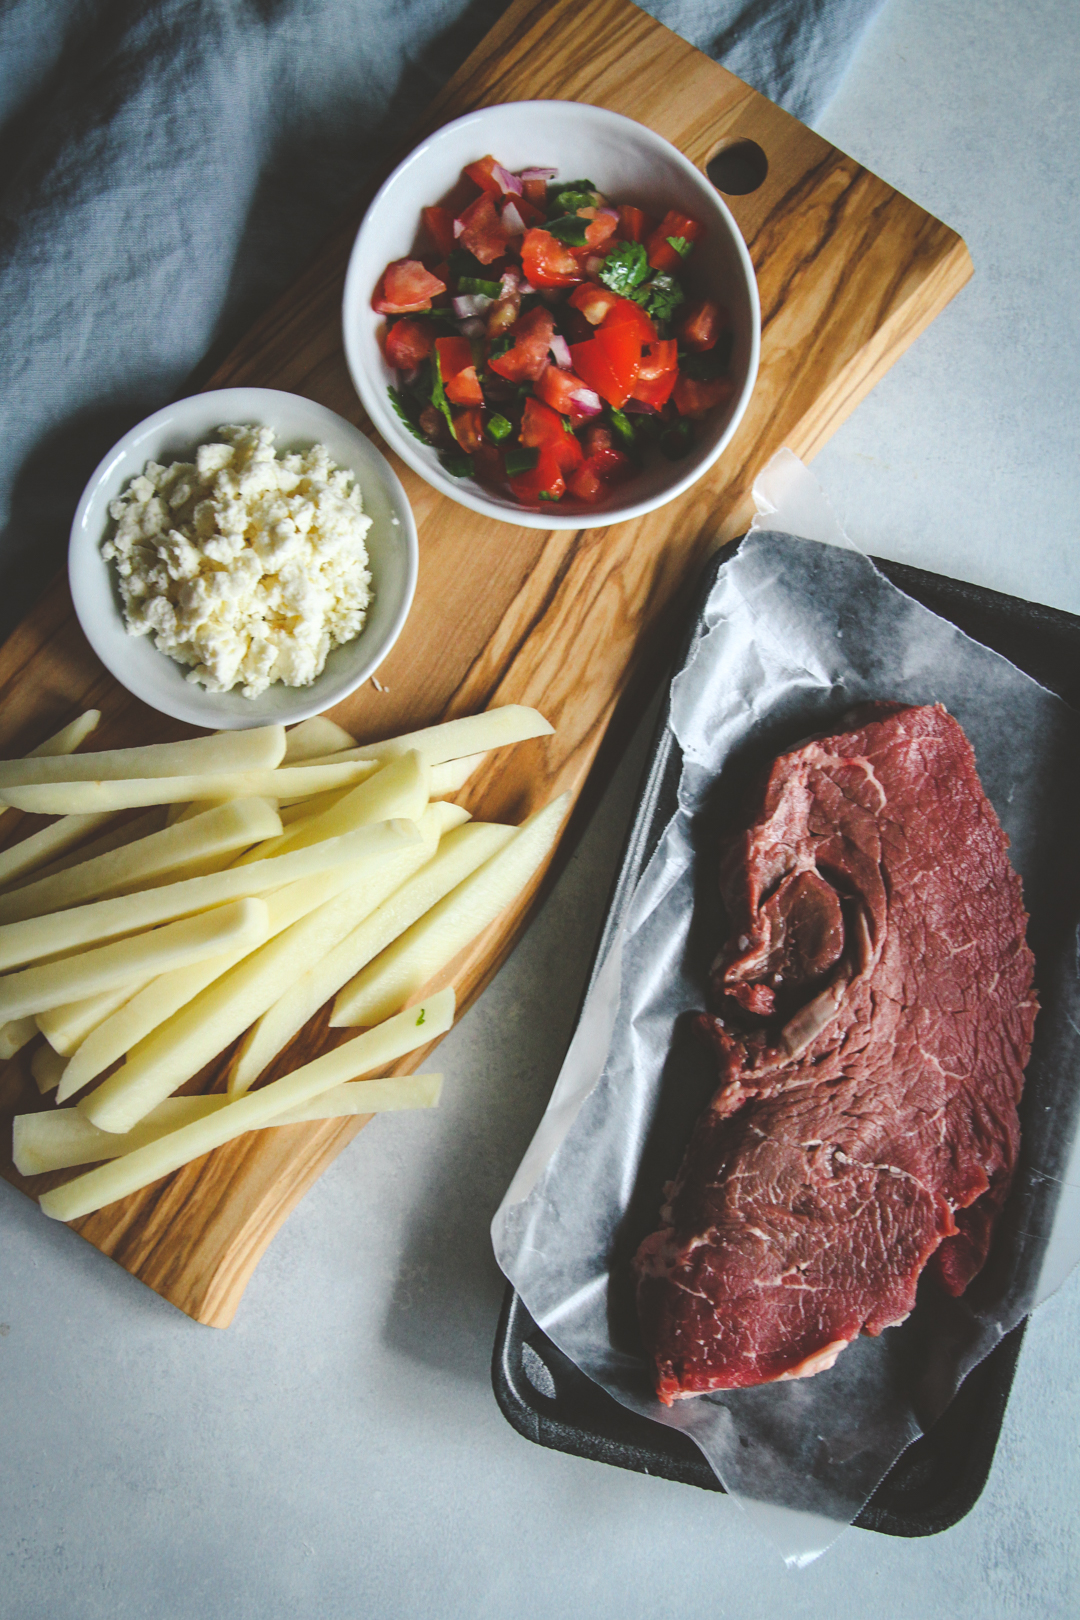 How to make carne asada fries, Carne asada recipe, Skinnytaste one and done recipe, skinnytaste cookbook recipe, one pan sheetpan meal, loaded steak fries, healthy steak fries recipe